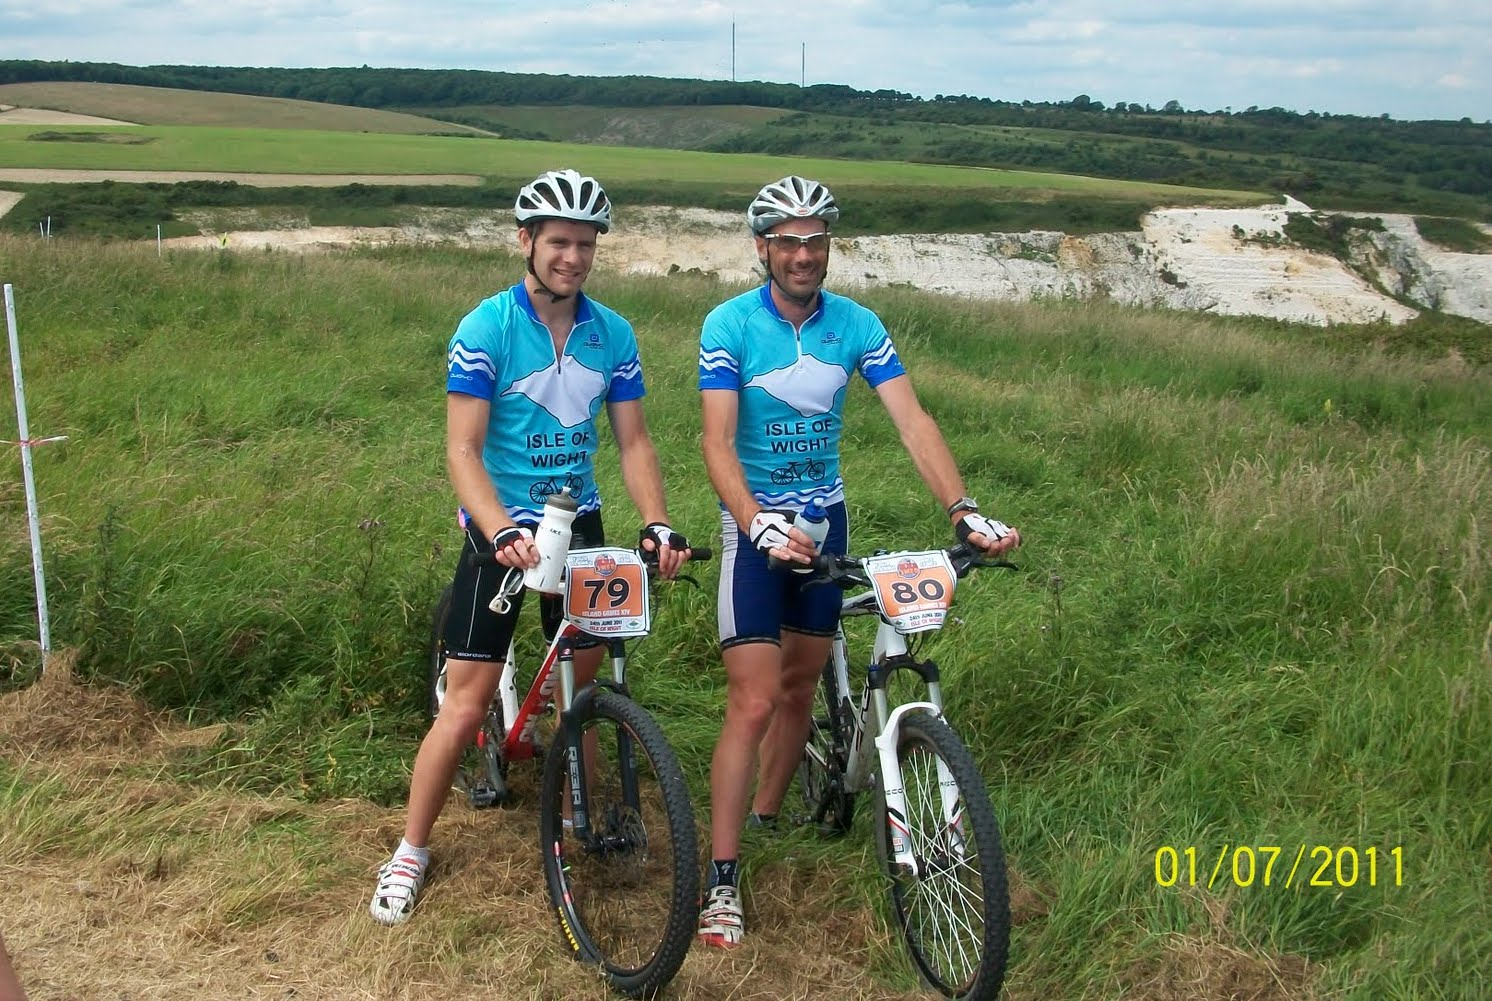 Natwest Island Games 2011 — Isle of Wight